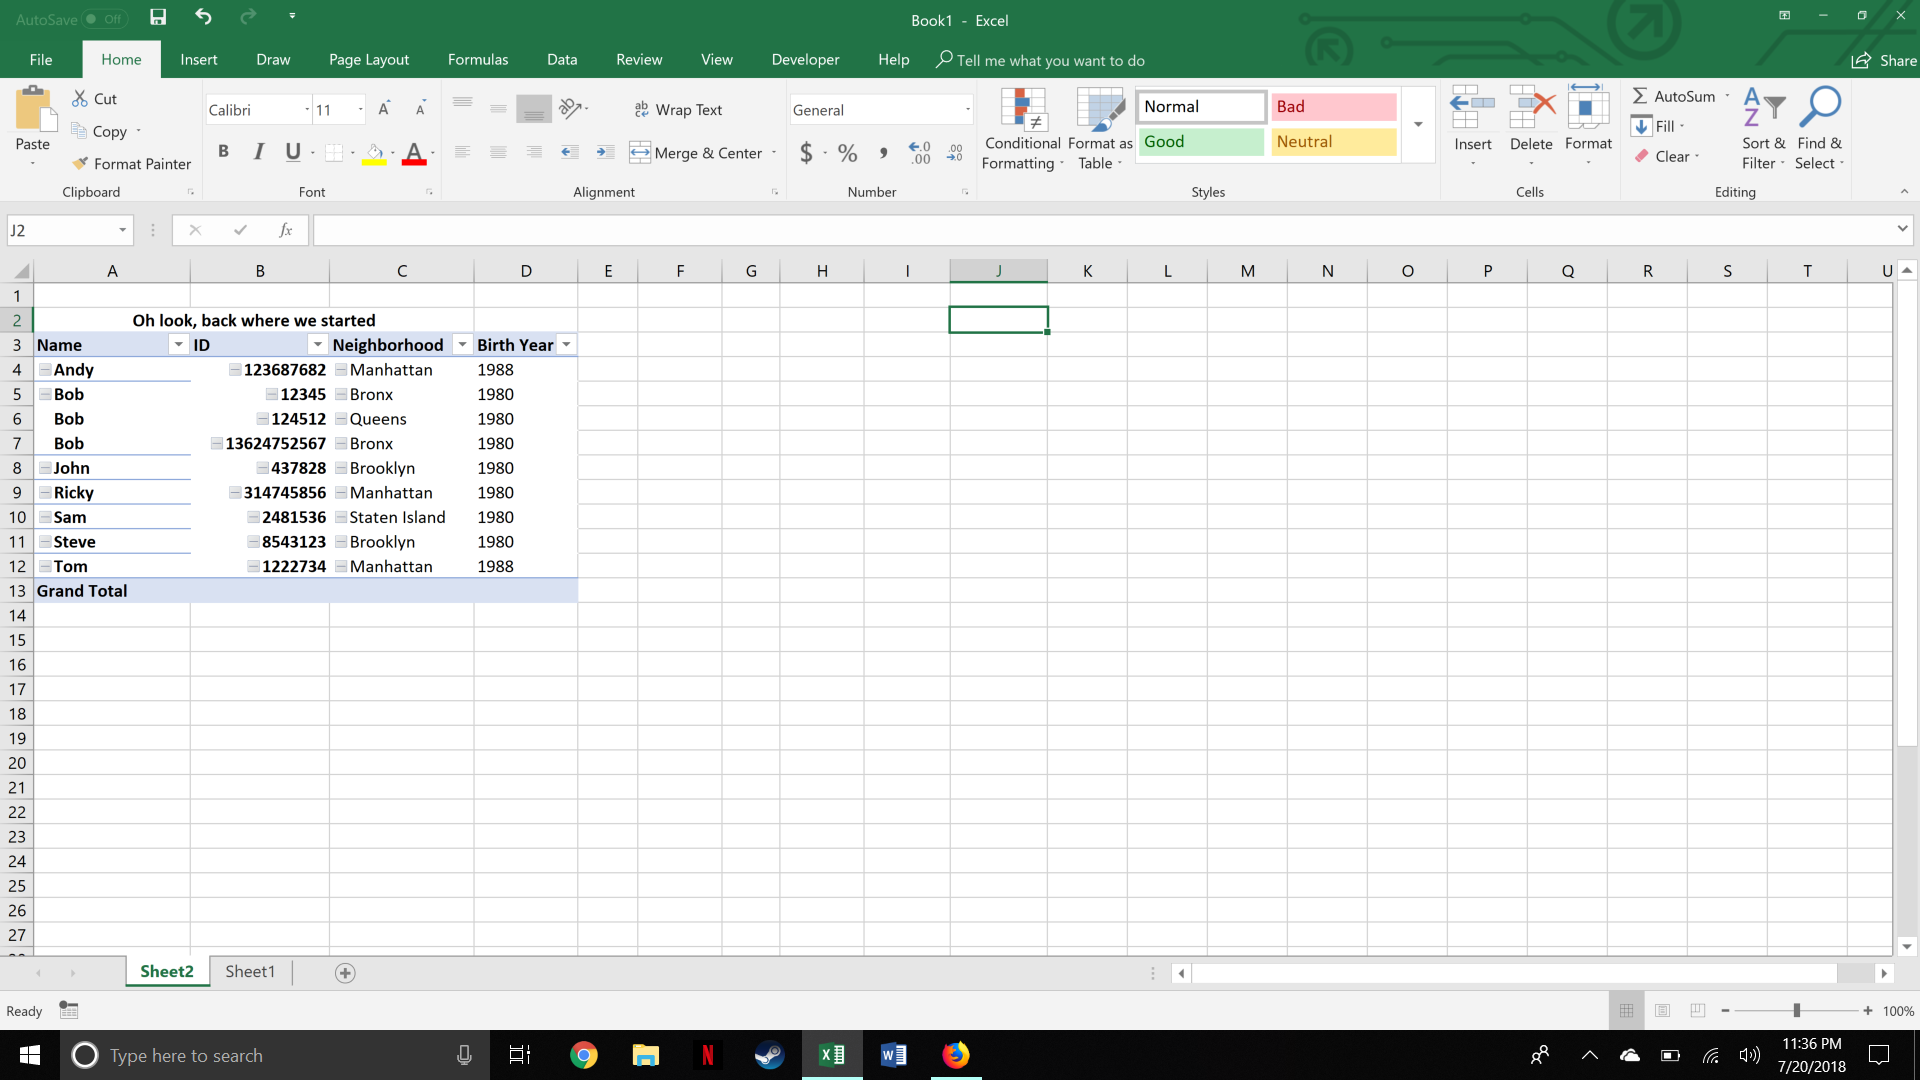 A pivot table in Excel